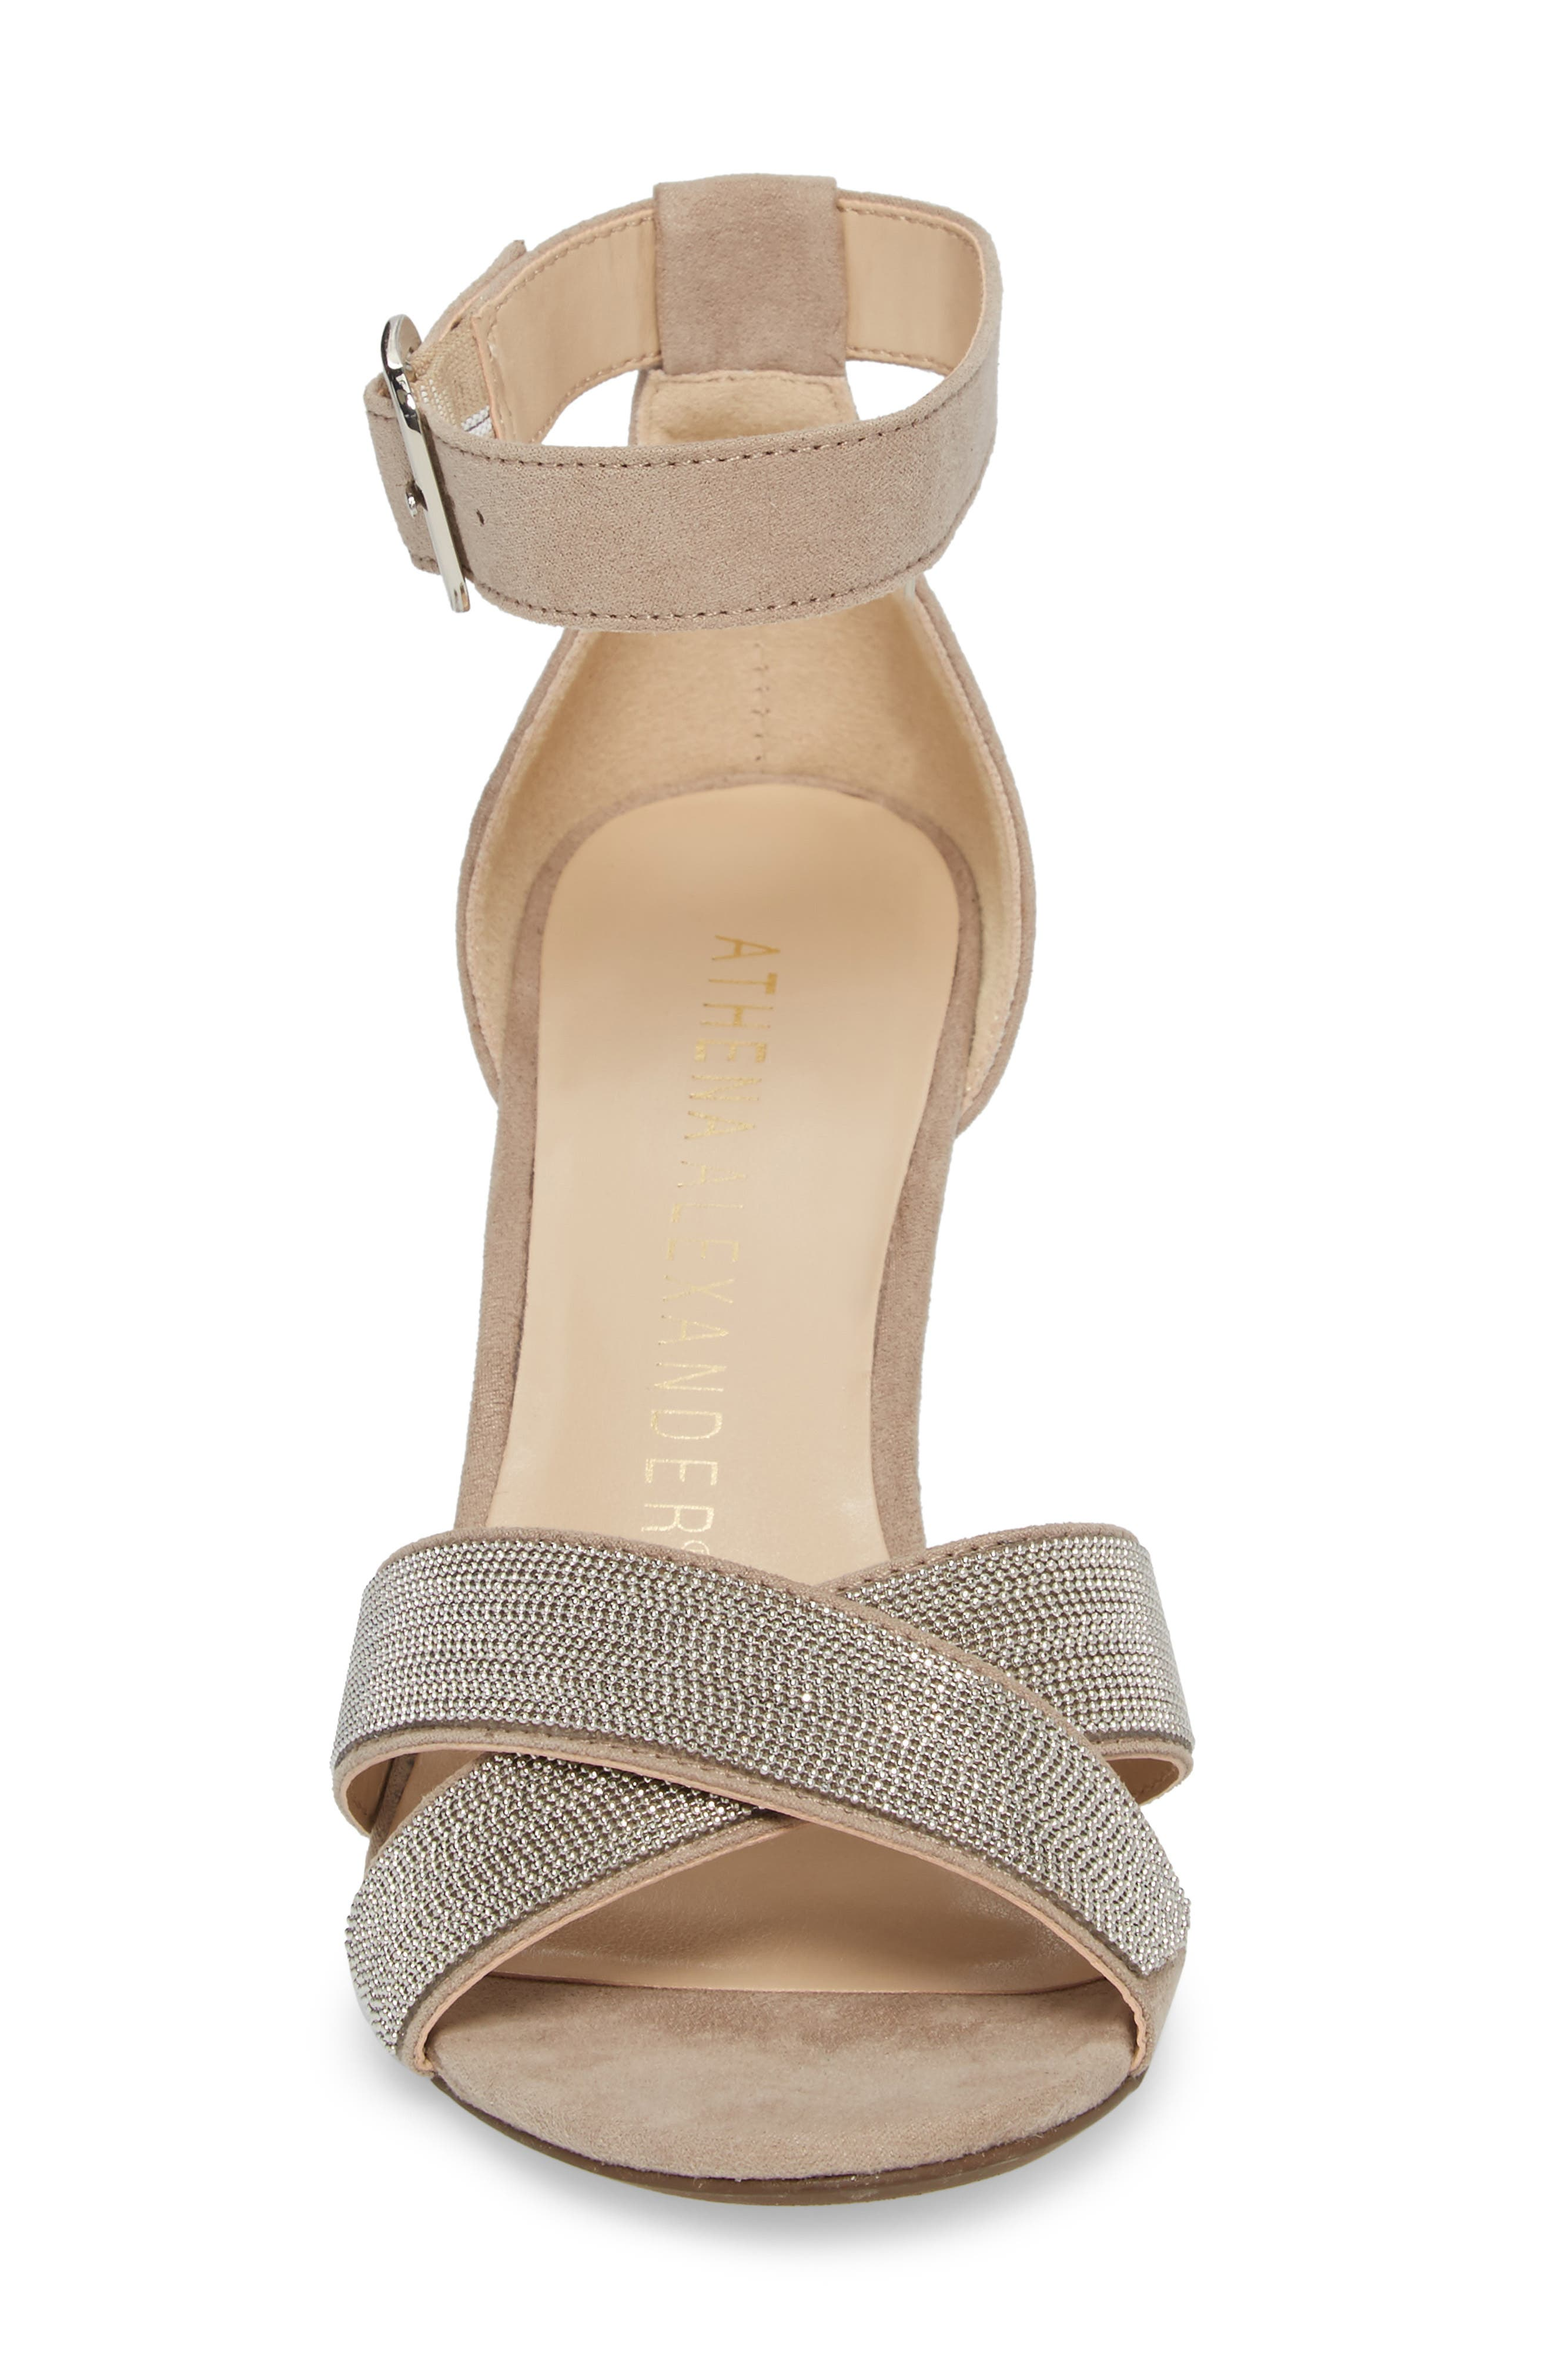 Zorra Wedge Sandal,                             Alternate thumbnail 4, color,                             TAUPE SUEDE